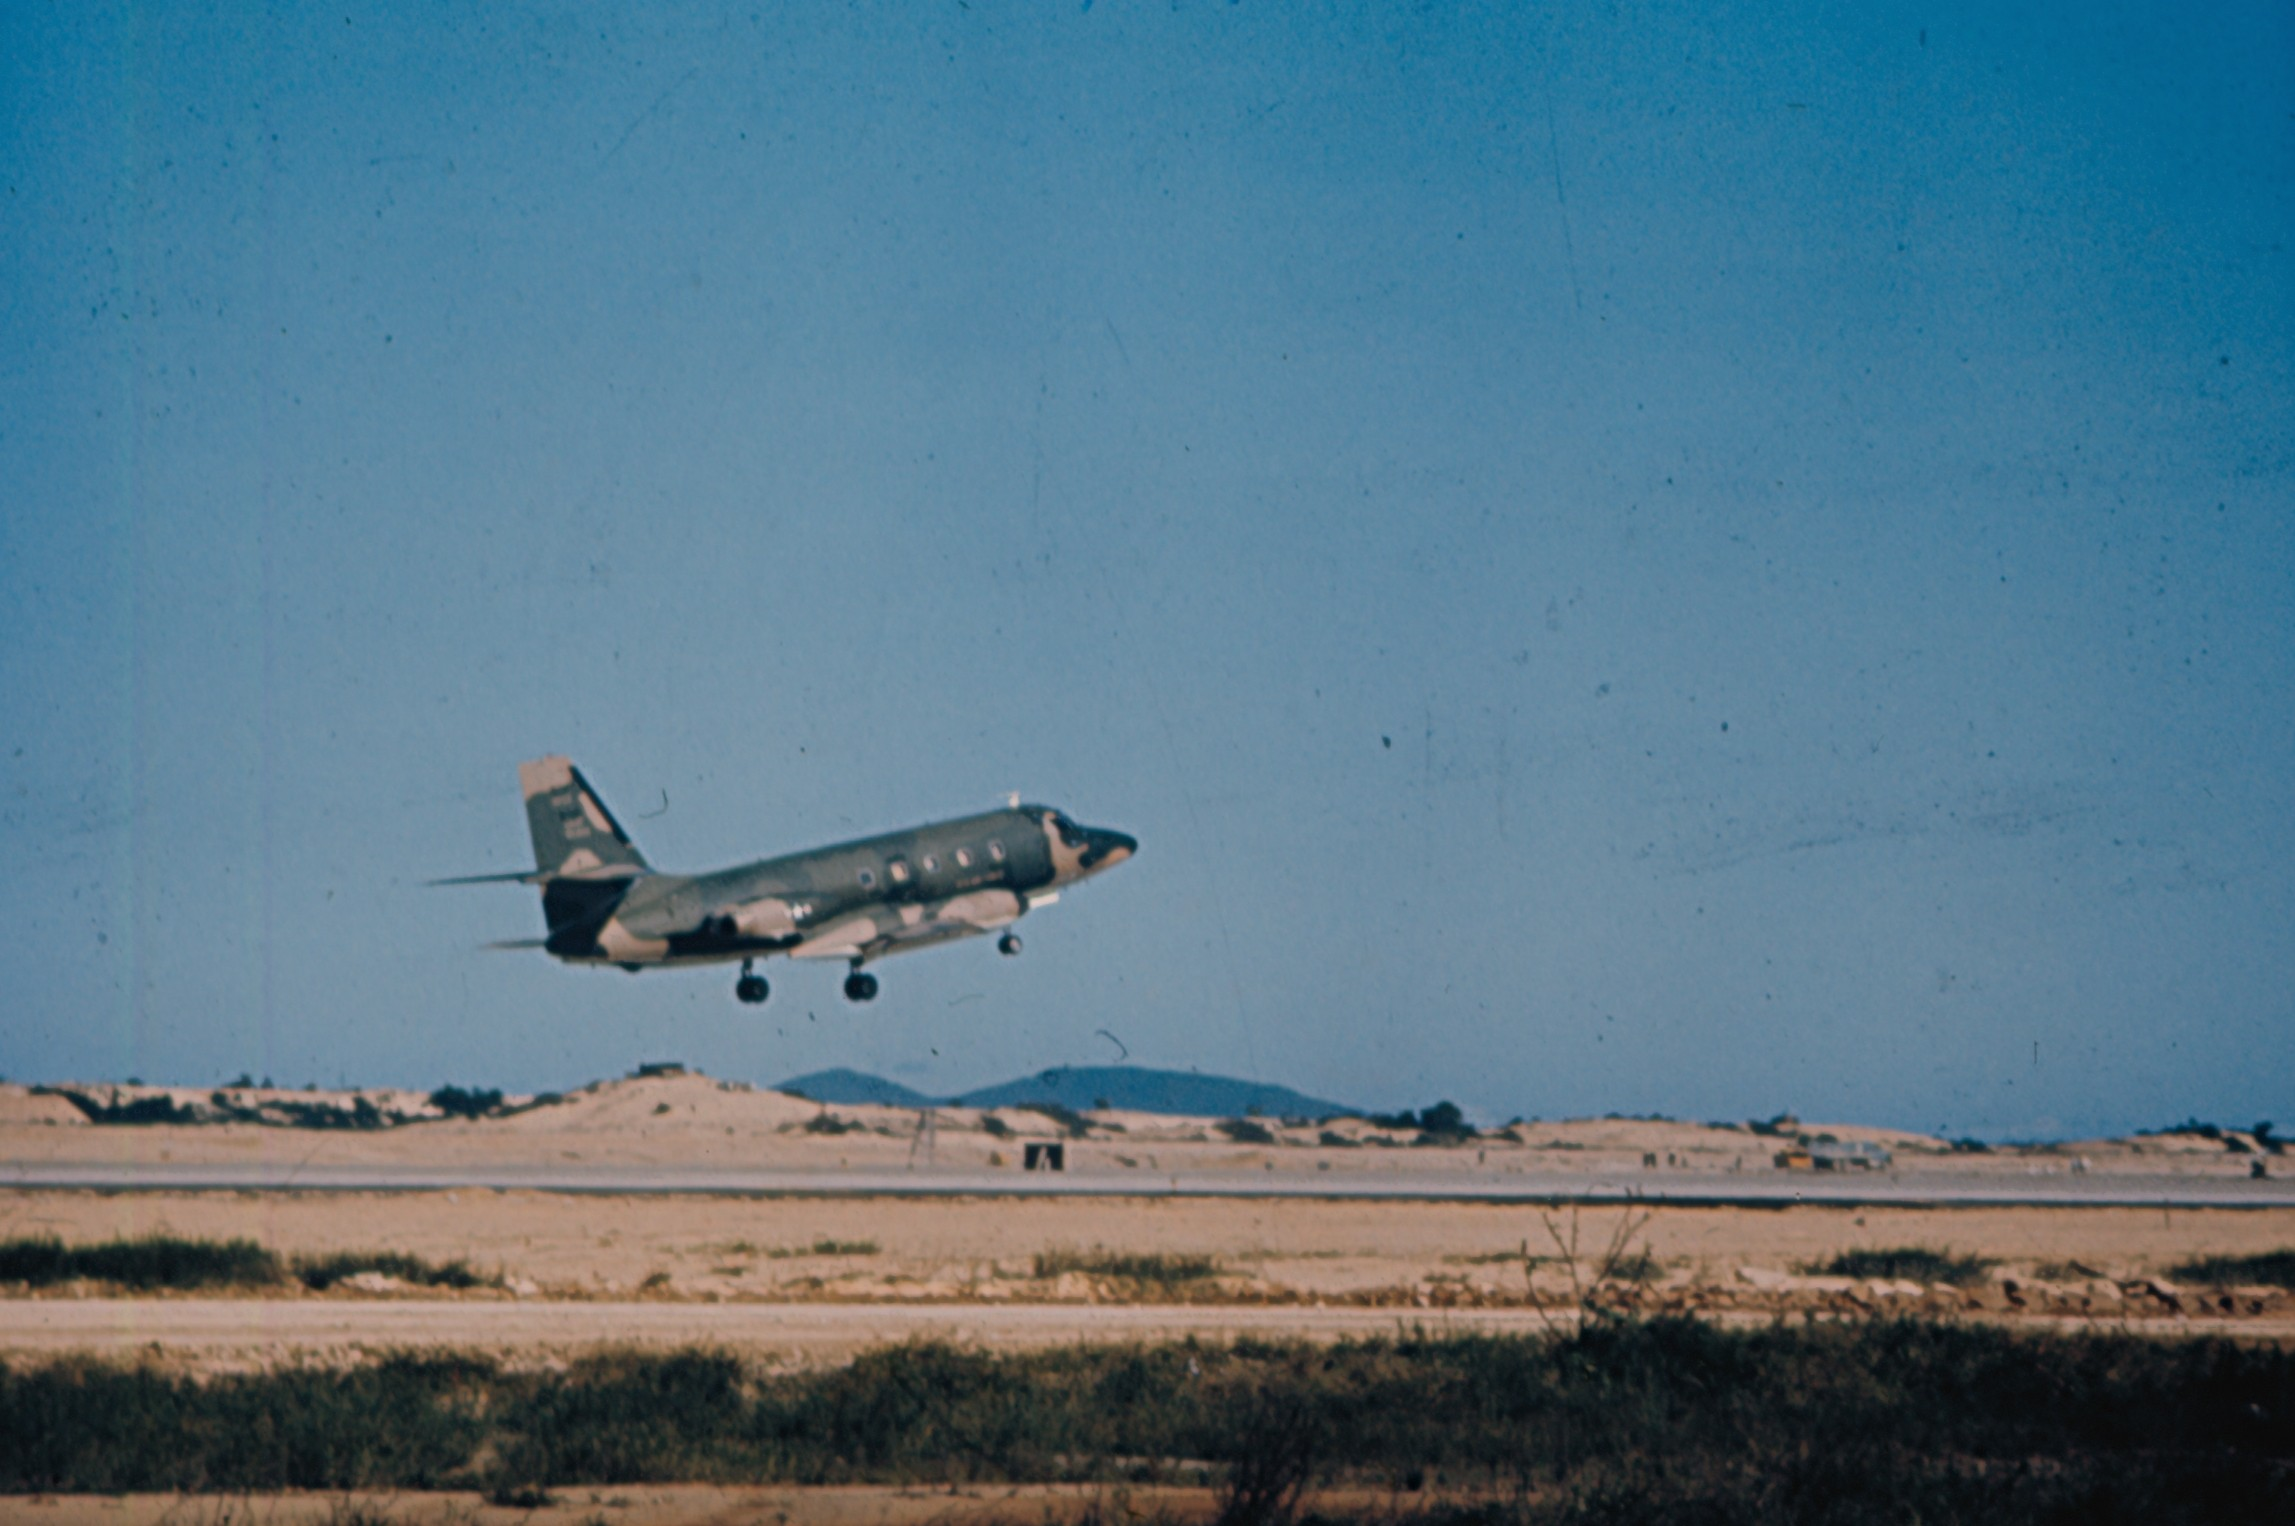 JetStars wore a camouflage paint scheme for operations in Southeast Asia during the  Vietnam War. This C-140A is taking off from Tan Son Nhut Air Base in South Vietnam.